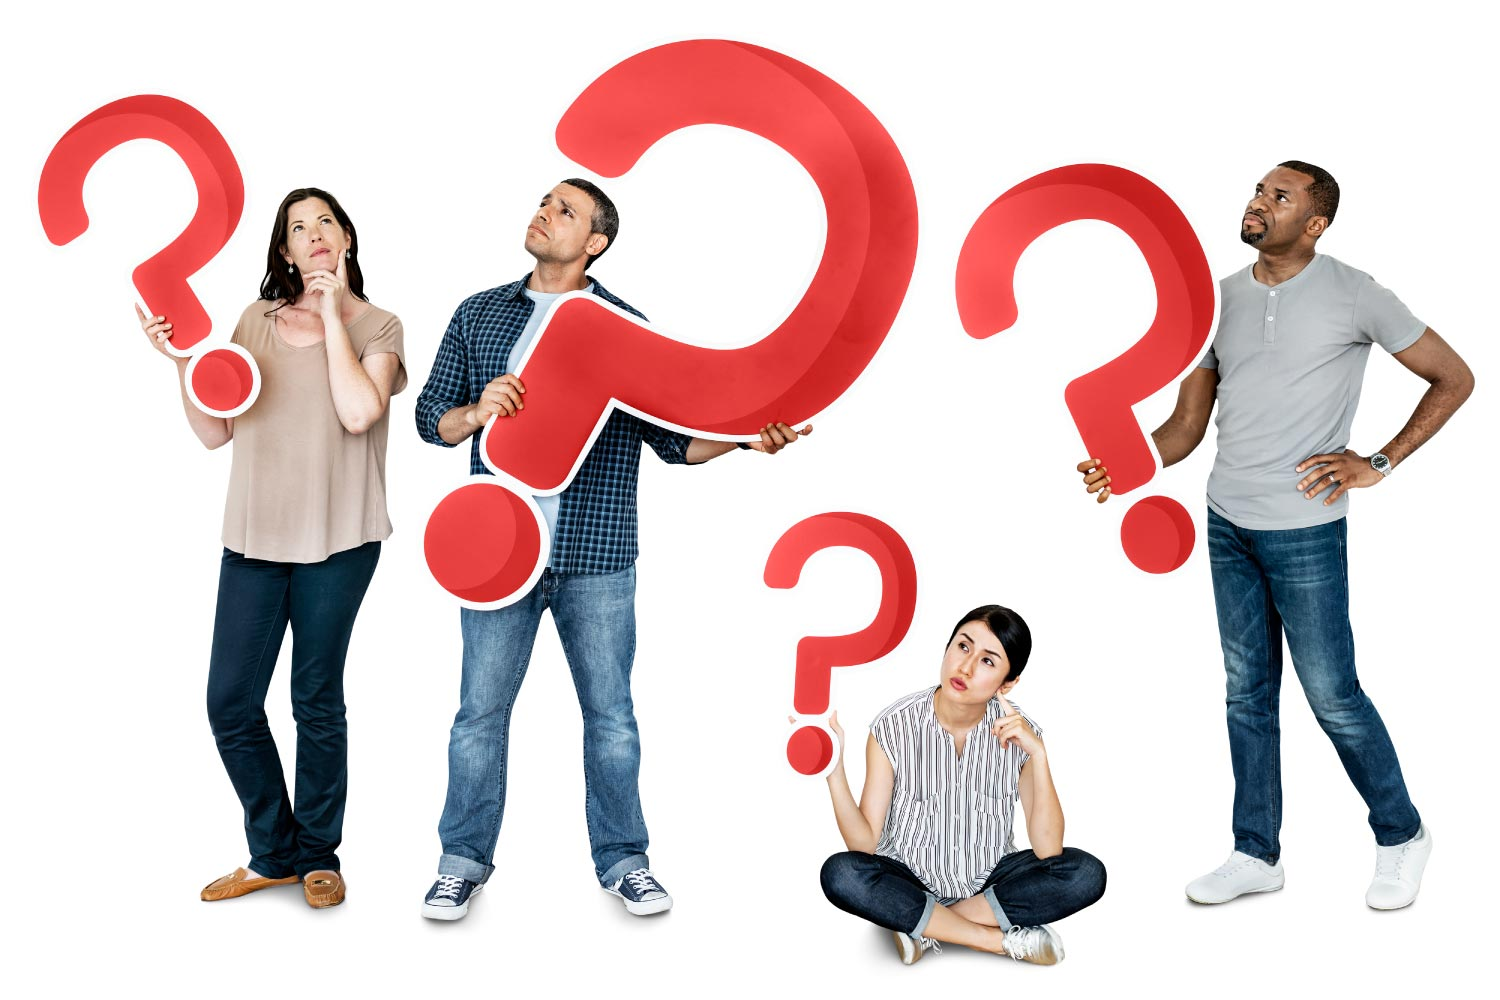 Diverse group of people hold up big red question marks as they think of questions to ask their dental hygienist